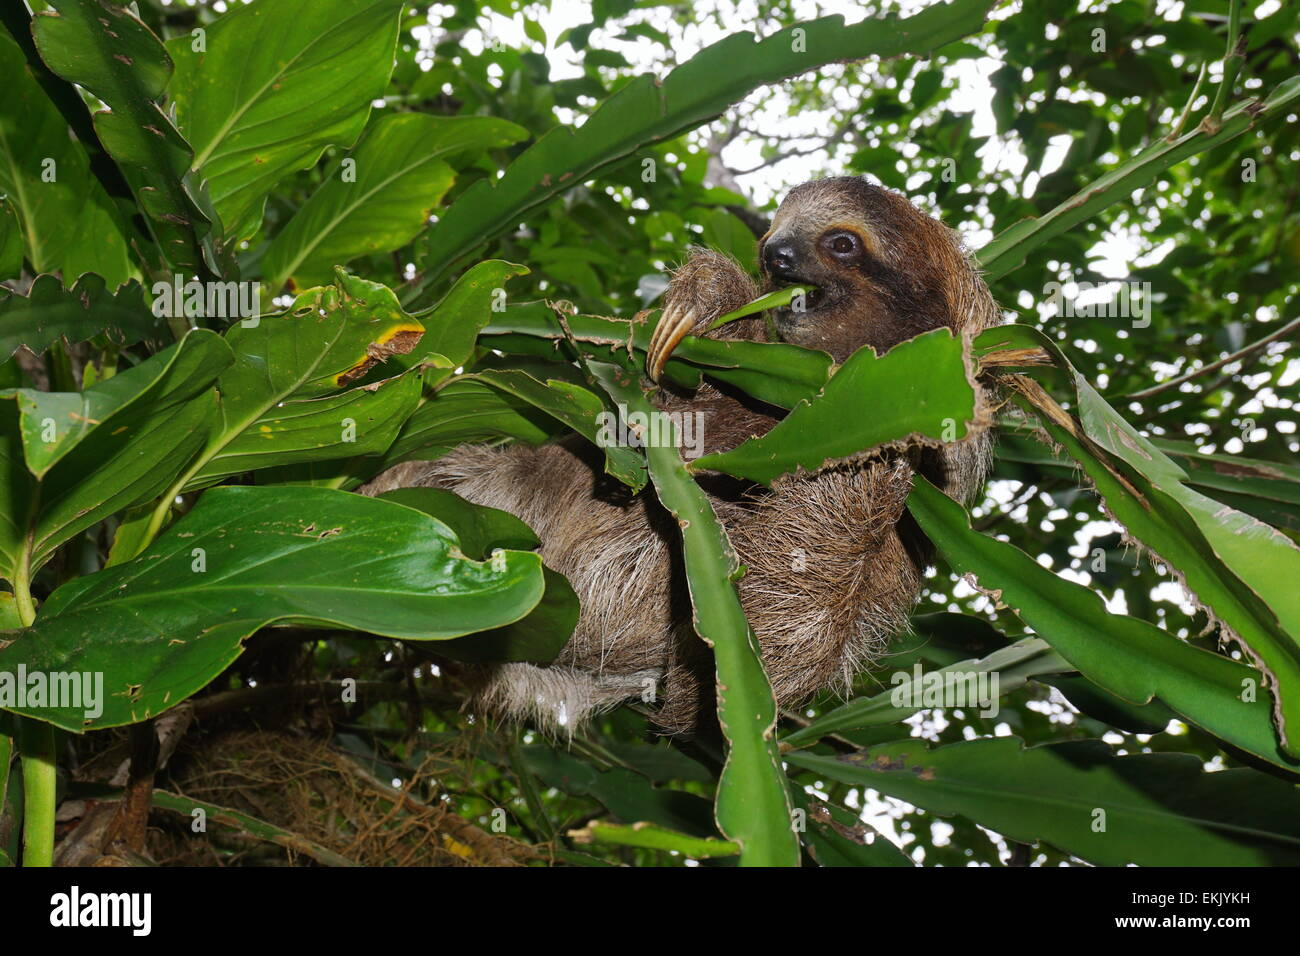 Young three-toed sloth eating a leaf in the jungle of Costa Rica, wild animal, Central America Stock Photo